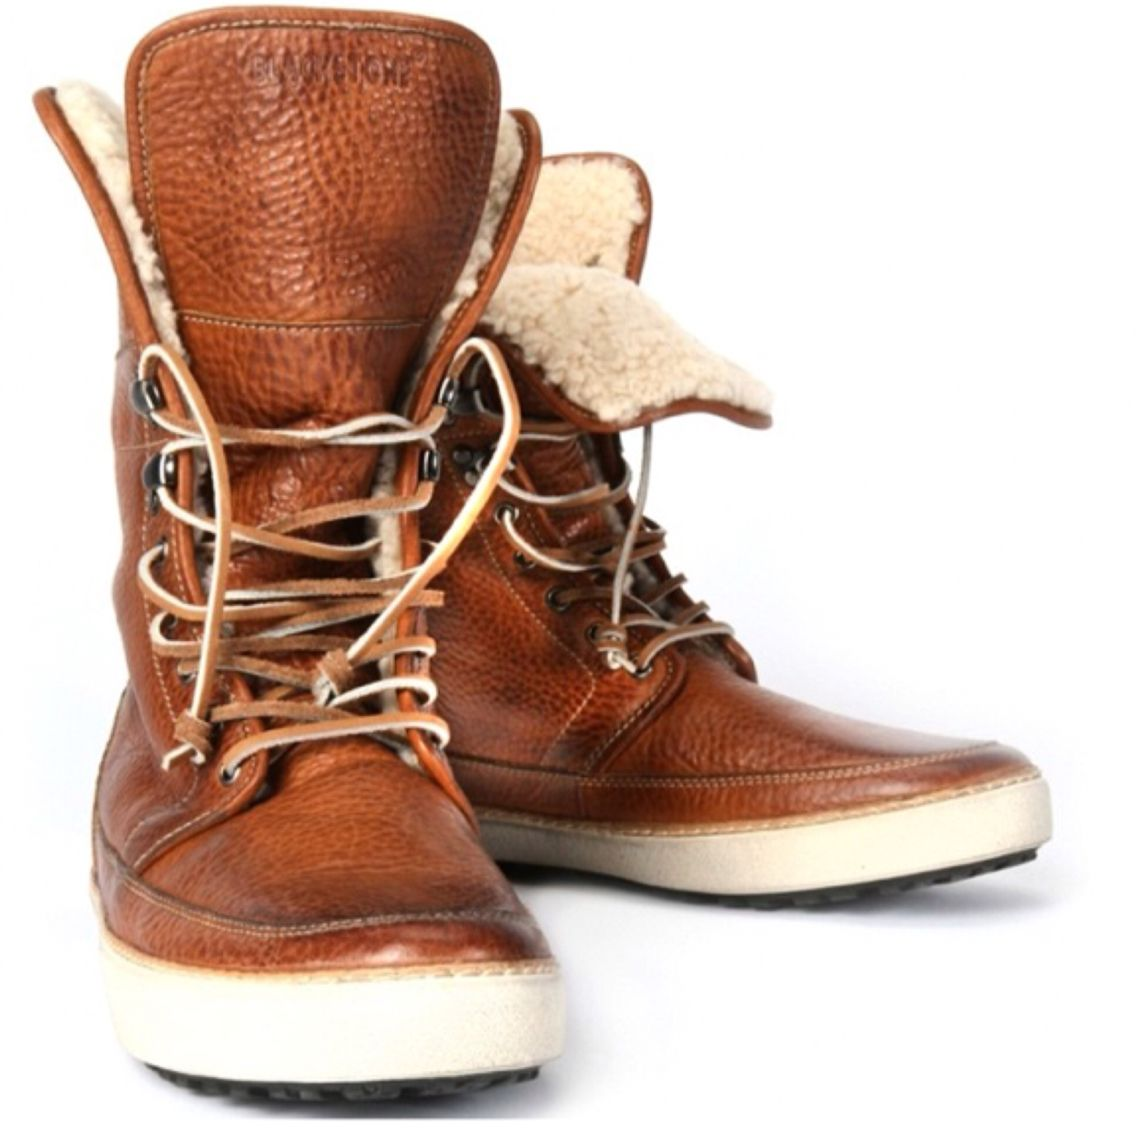 And Sherpa Boots Bags 2018 Lined En Men's Pinterest Accessories Hq6qOWgz